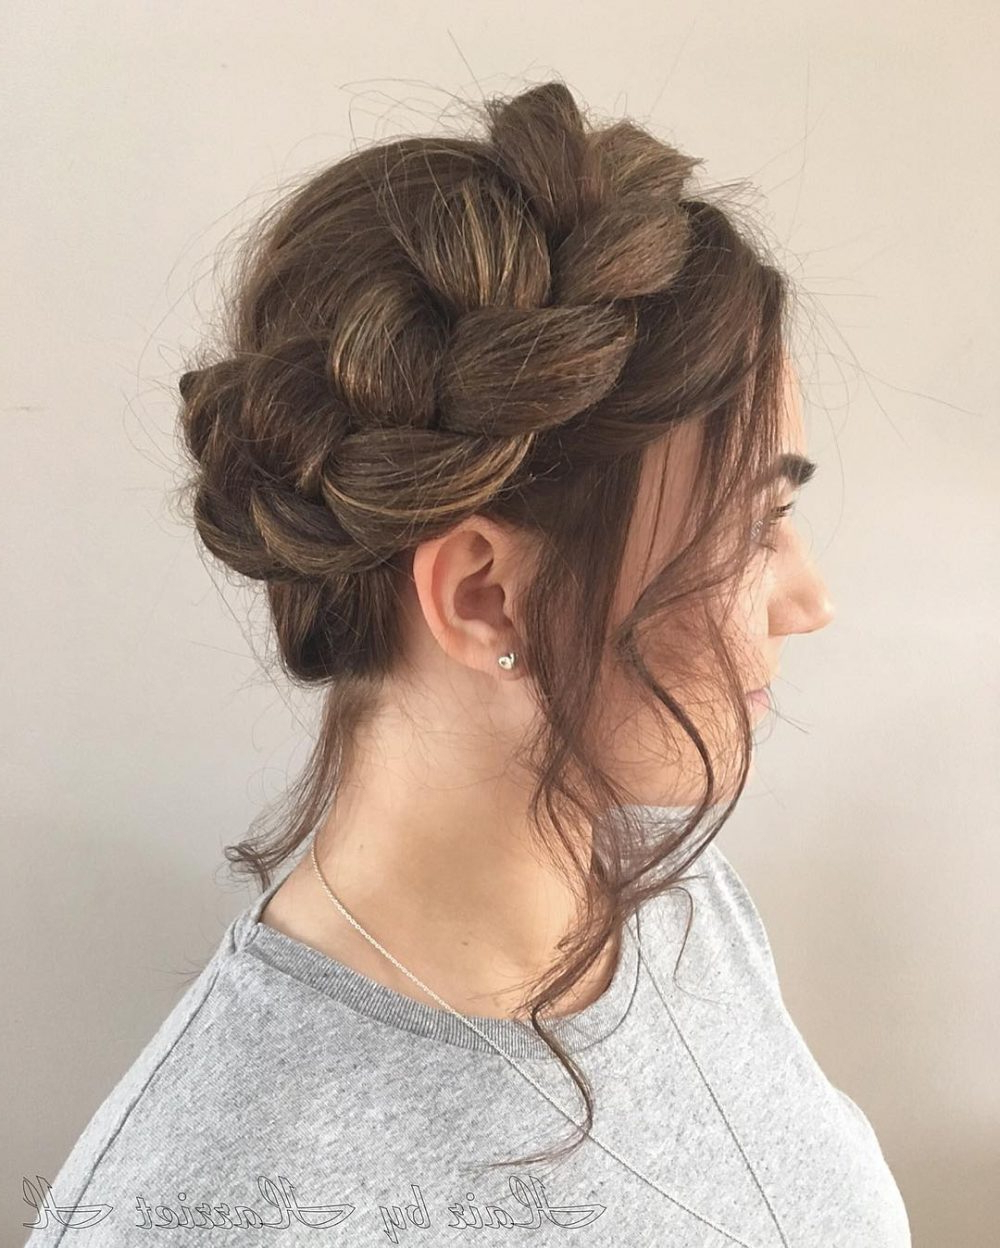 29 Gorgeous Braided Updos For Every Occasion In 2020 With Regard To Best And Newest Plaited Chignon Braid Hairstyles (View 3 of 20)